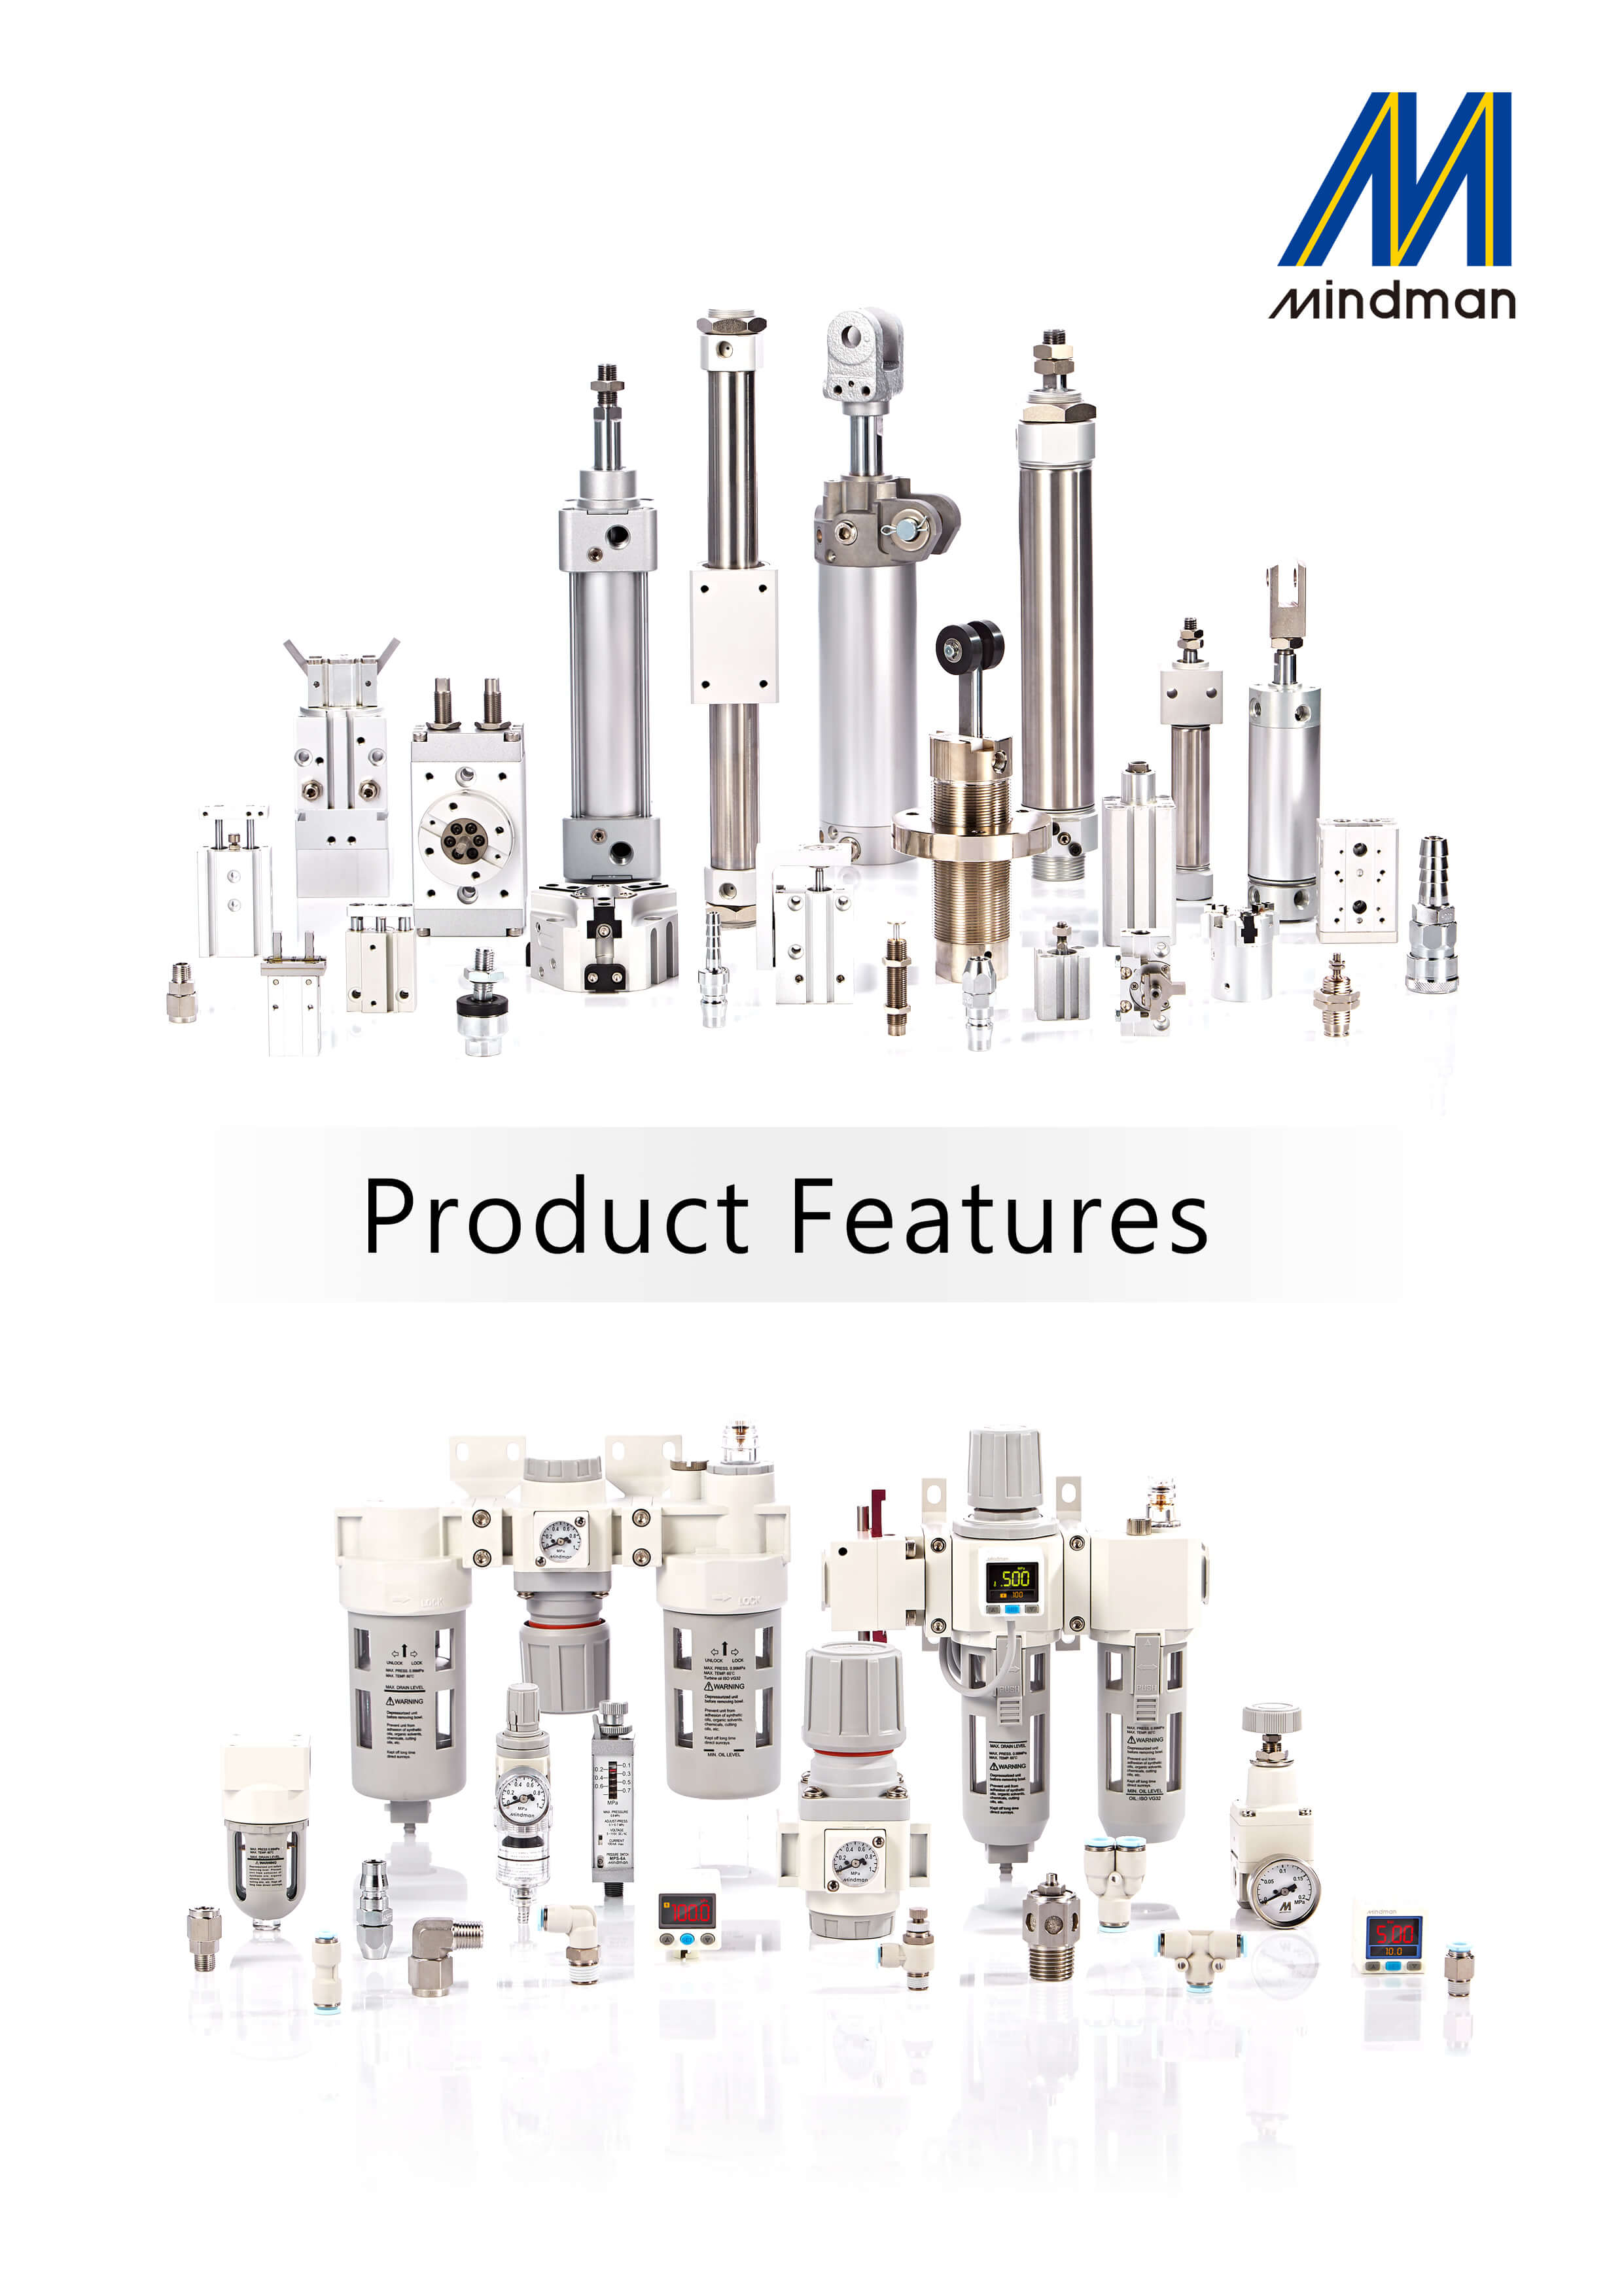 Product Features (Exclusive Rights for Distributors)